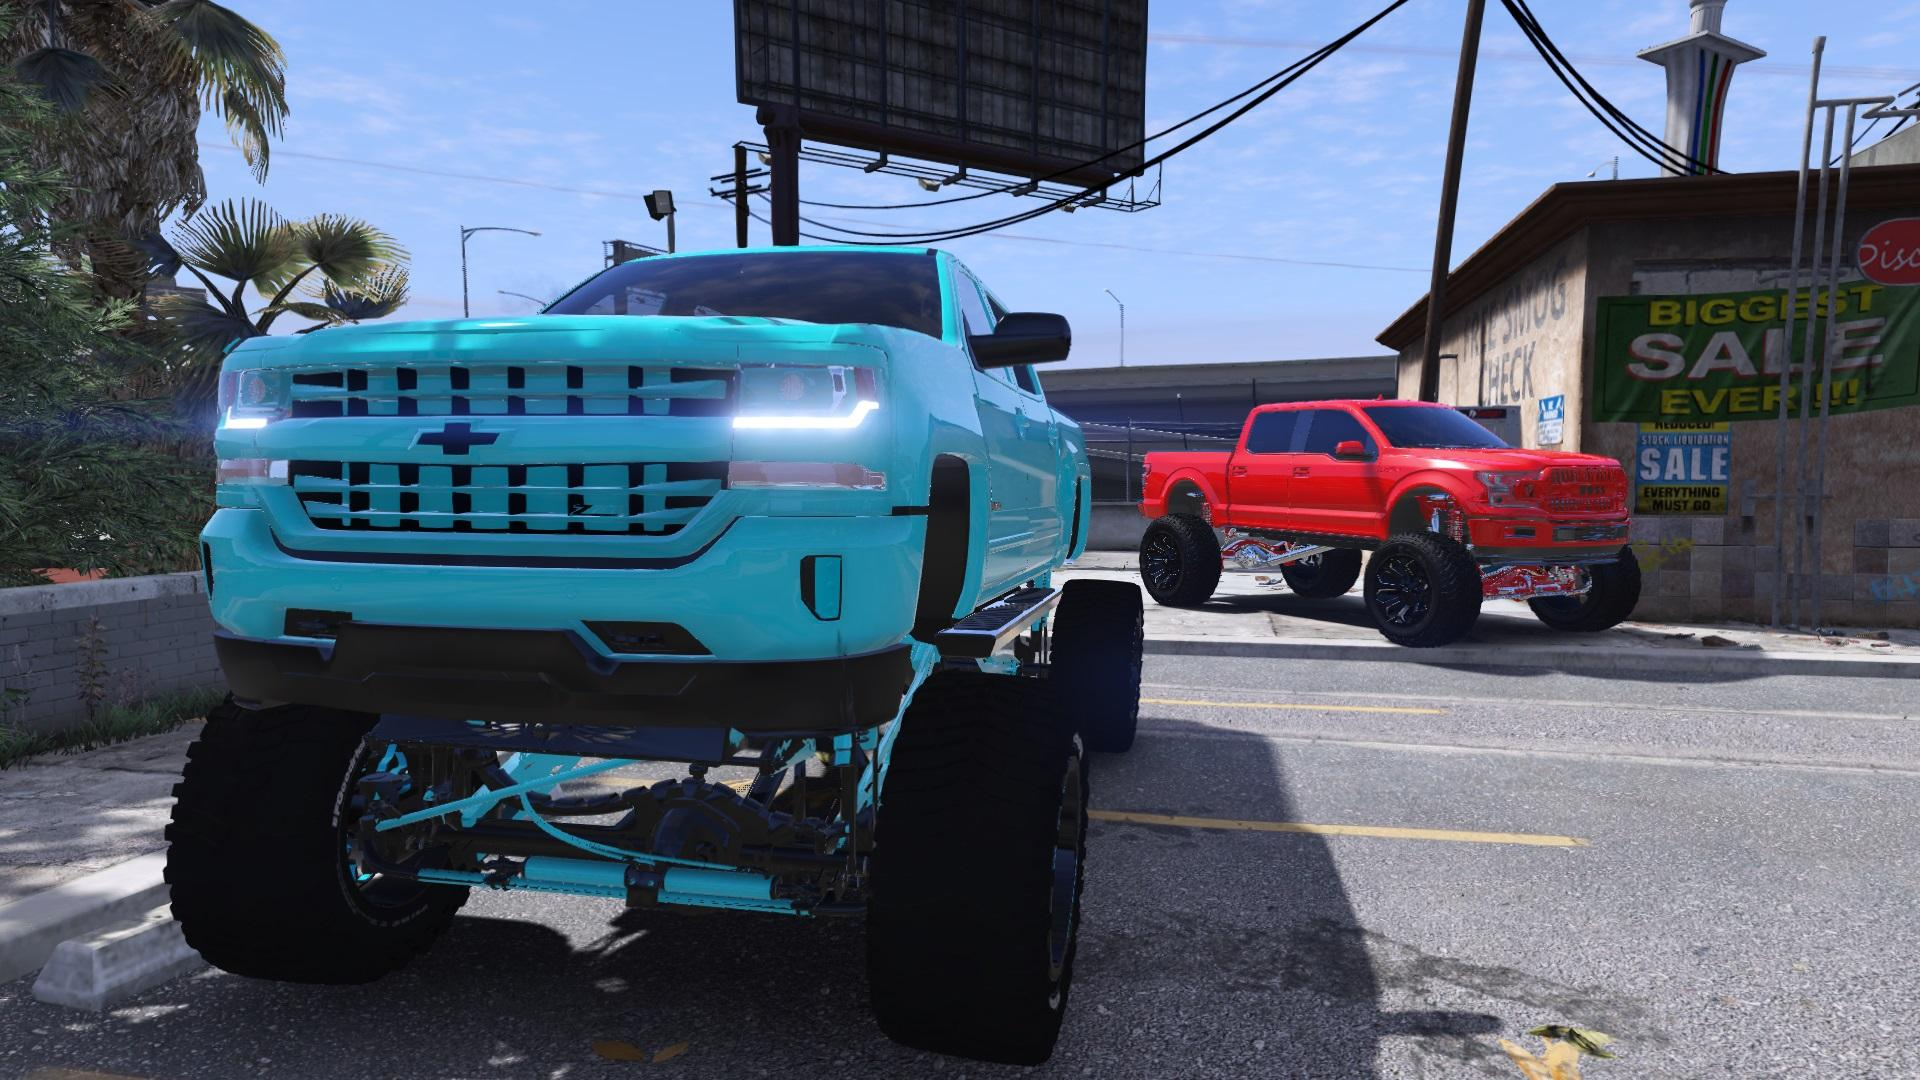 lifted chevy silverado addon gta5 mods trucks beta chevrolet truck squatted wallpapers gta mod rims vehicles replace cars gtainside screenshots